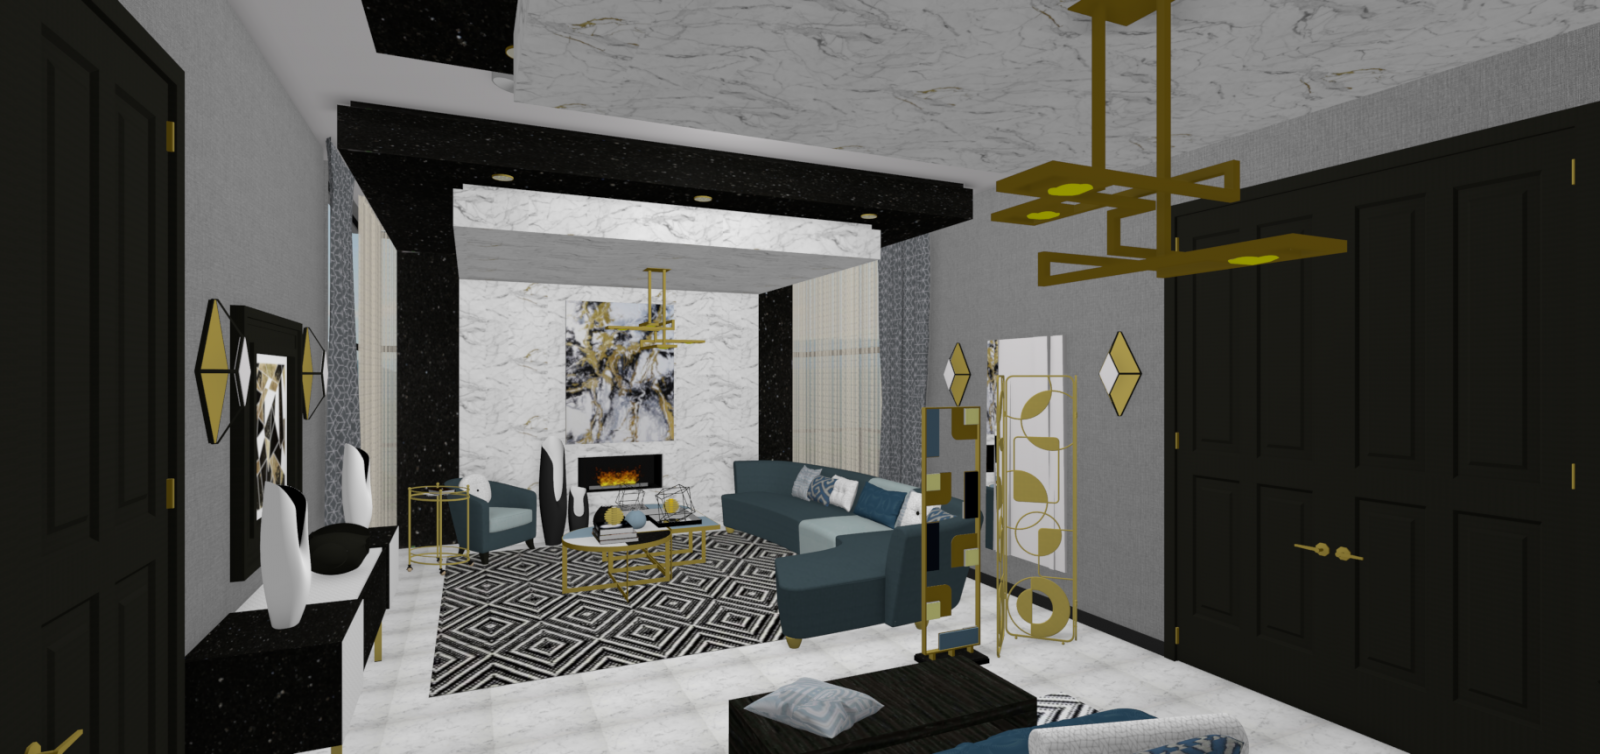 Master Bedroom With Private Lounge - Preliminary Design Concept